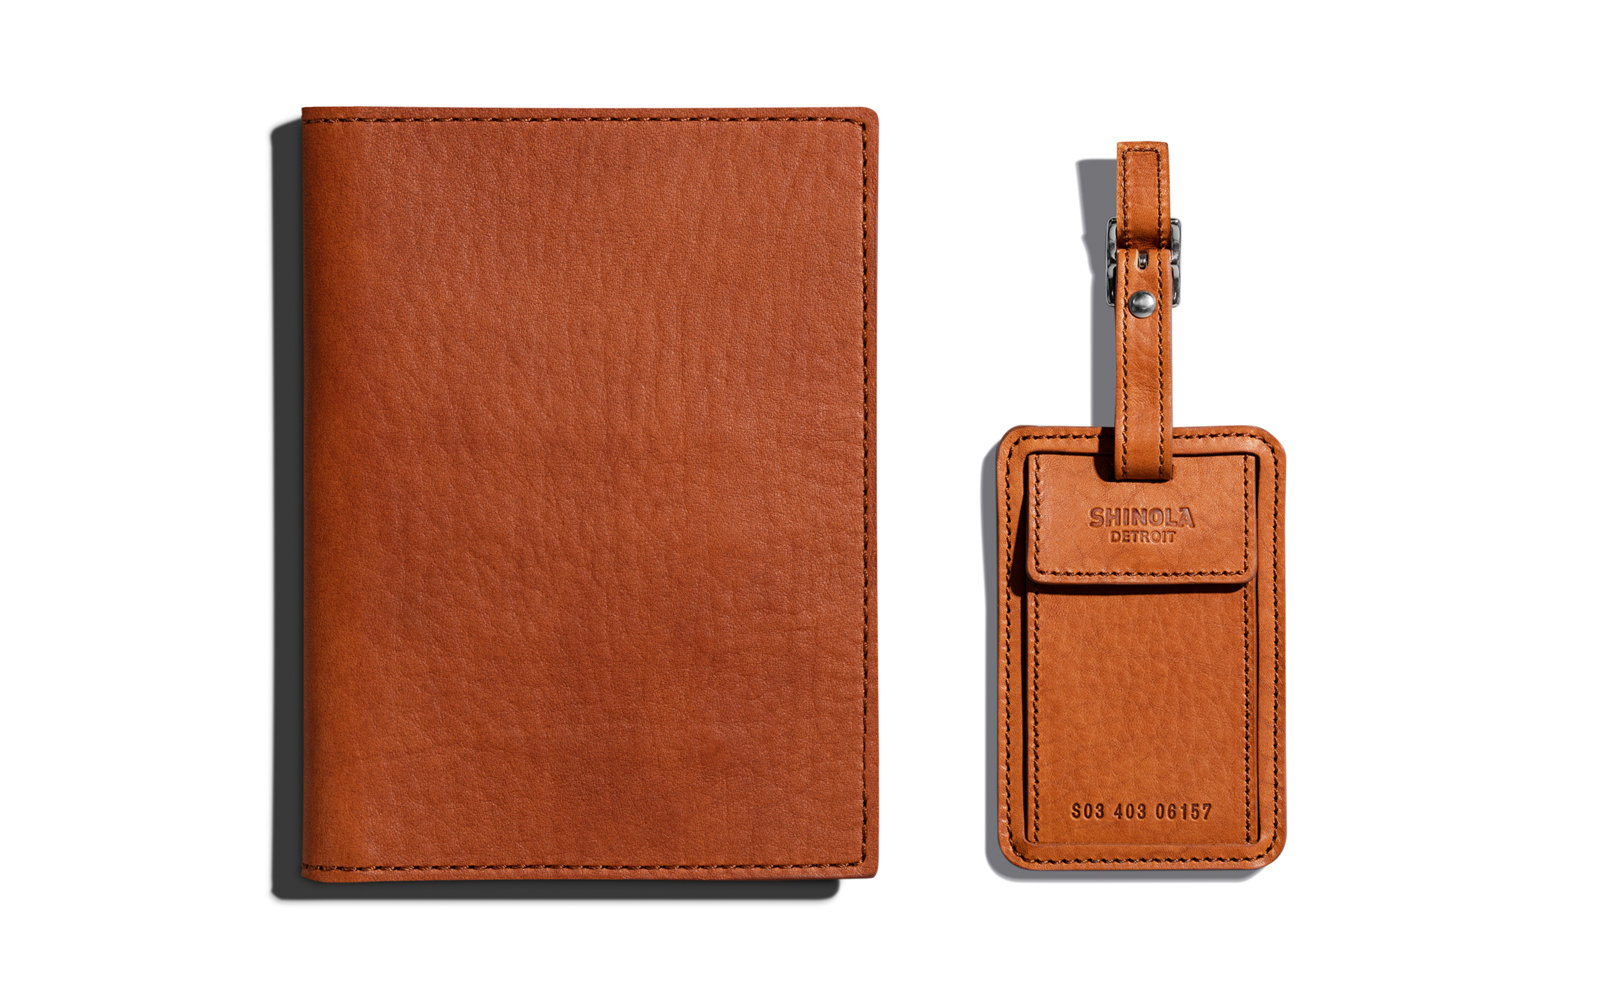 Gifts For Men Who Travel